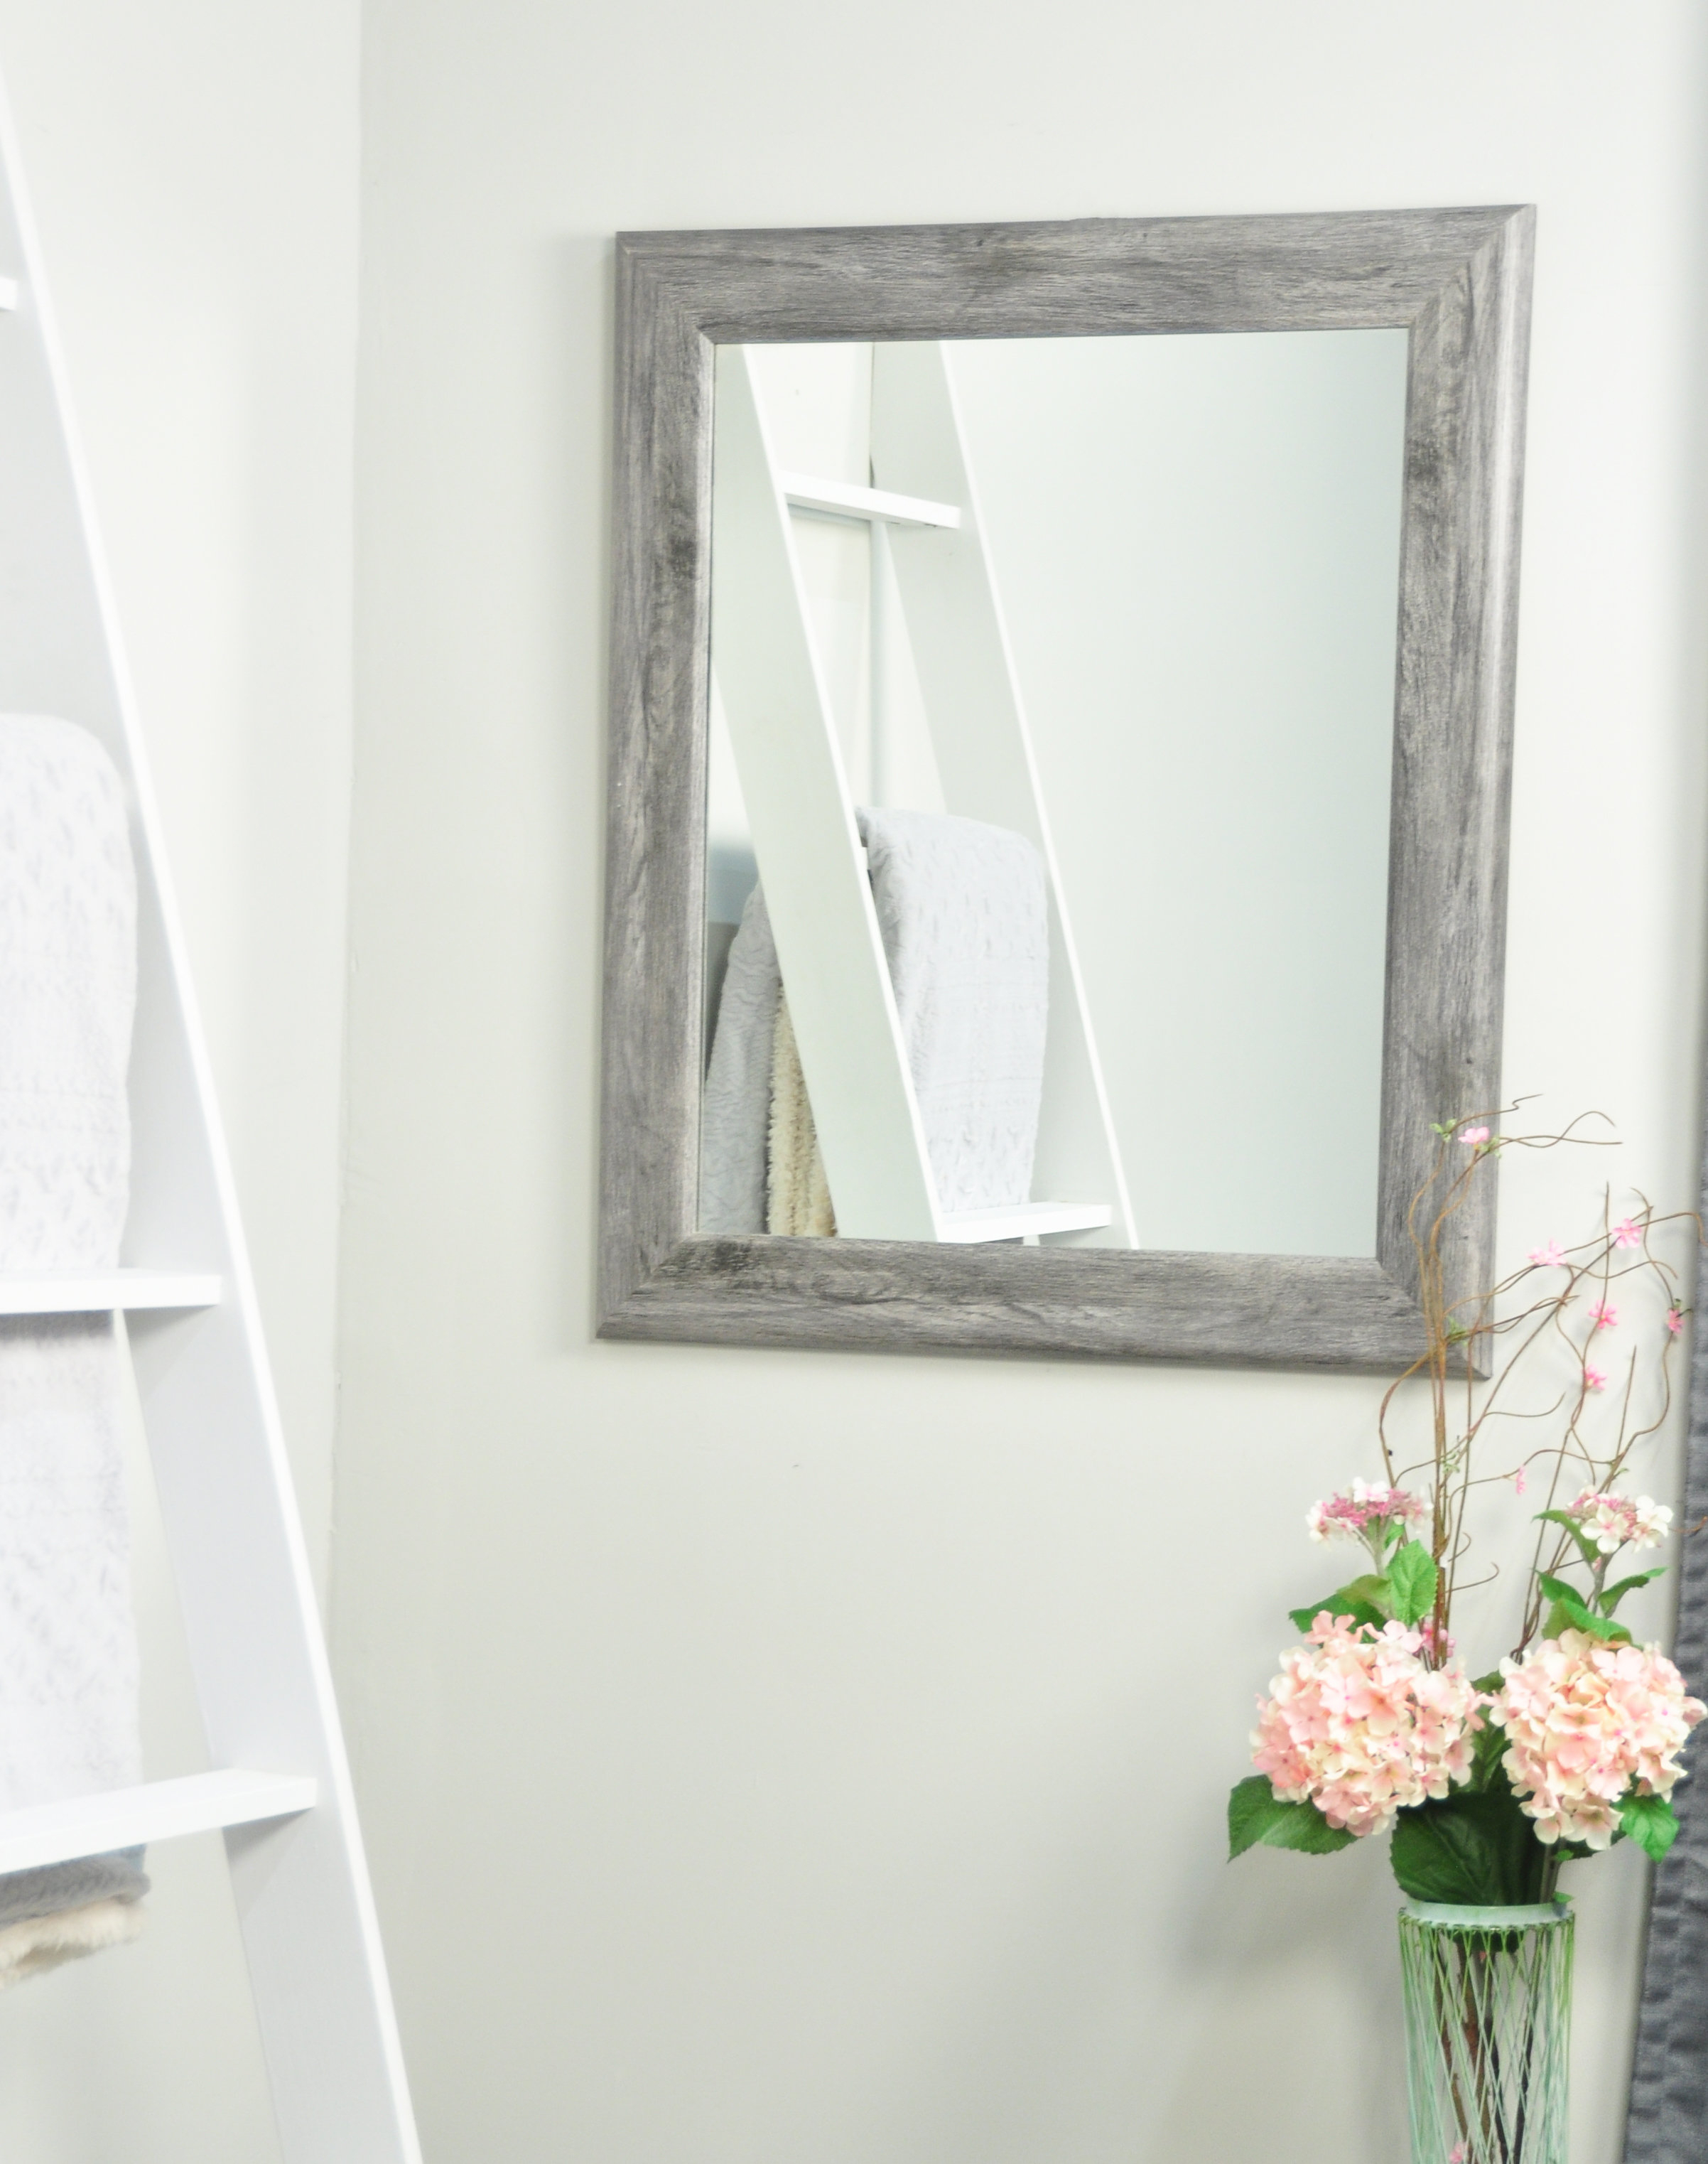 Farmhouse & Rustic Bathroom Mirrors | Birch Lane Intended For Industrial Modern & Contemporary Wall Mirrors (View 15 of 20)